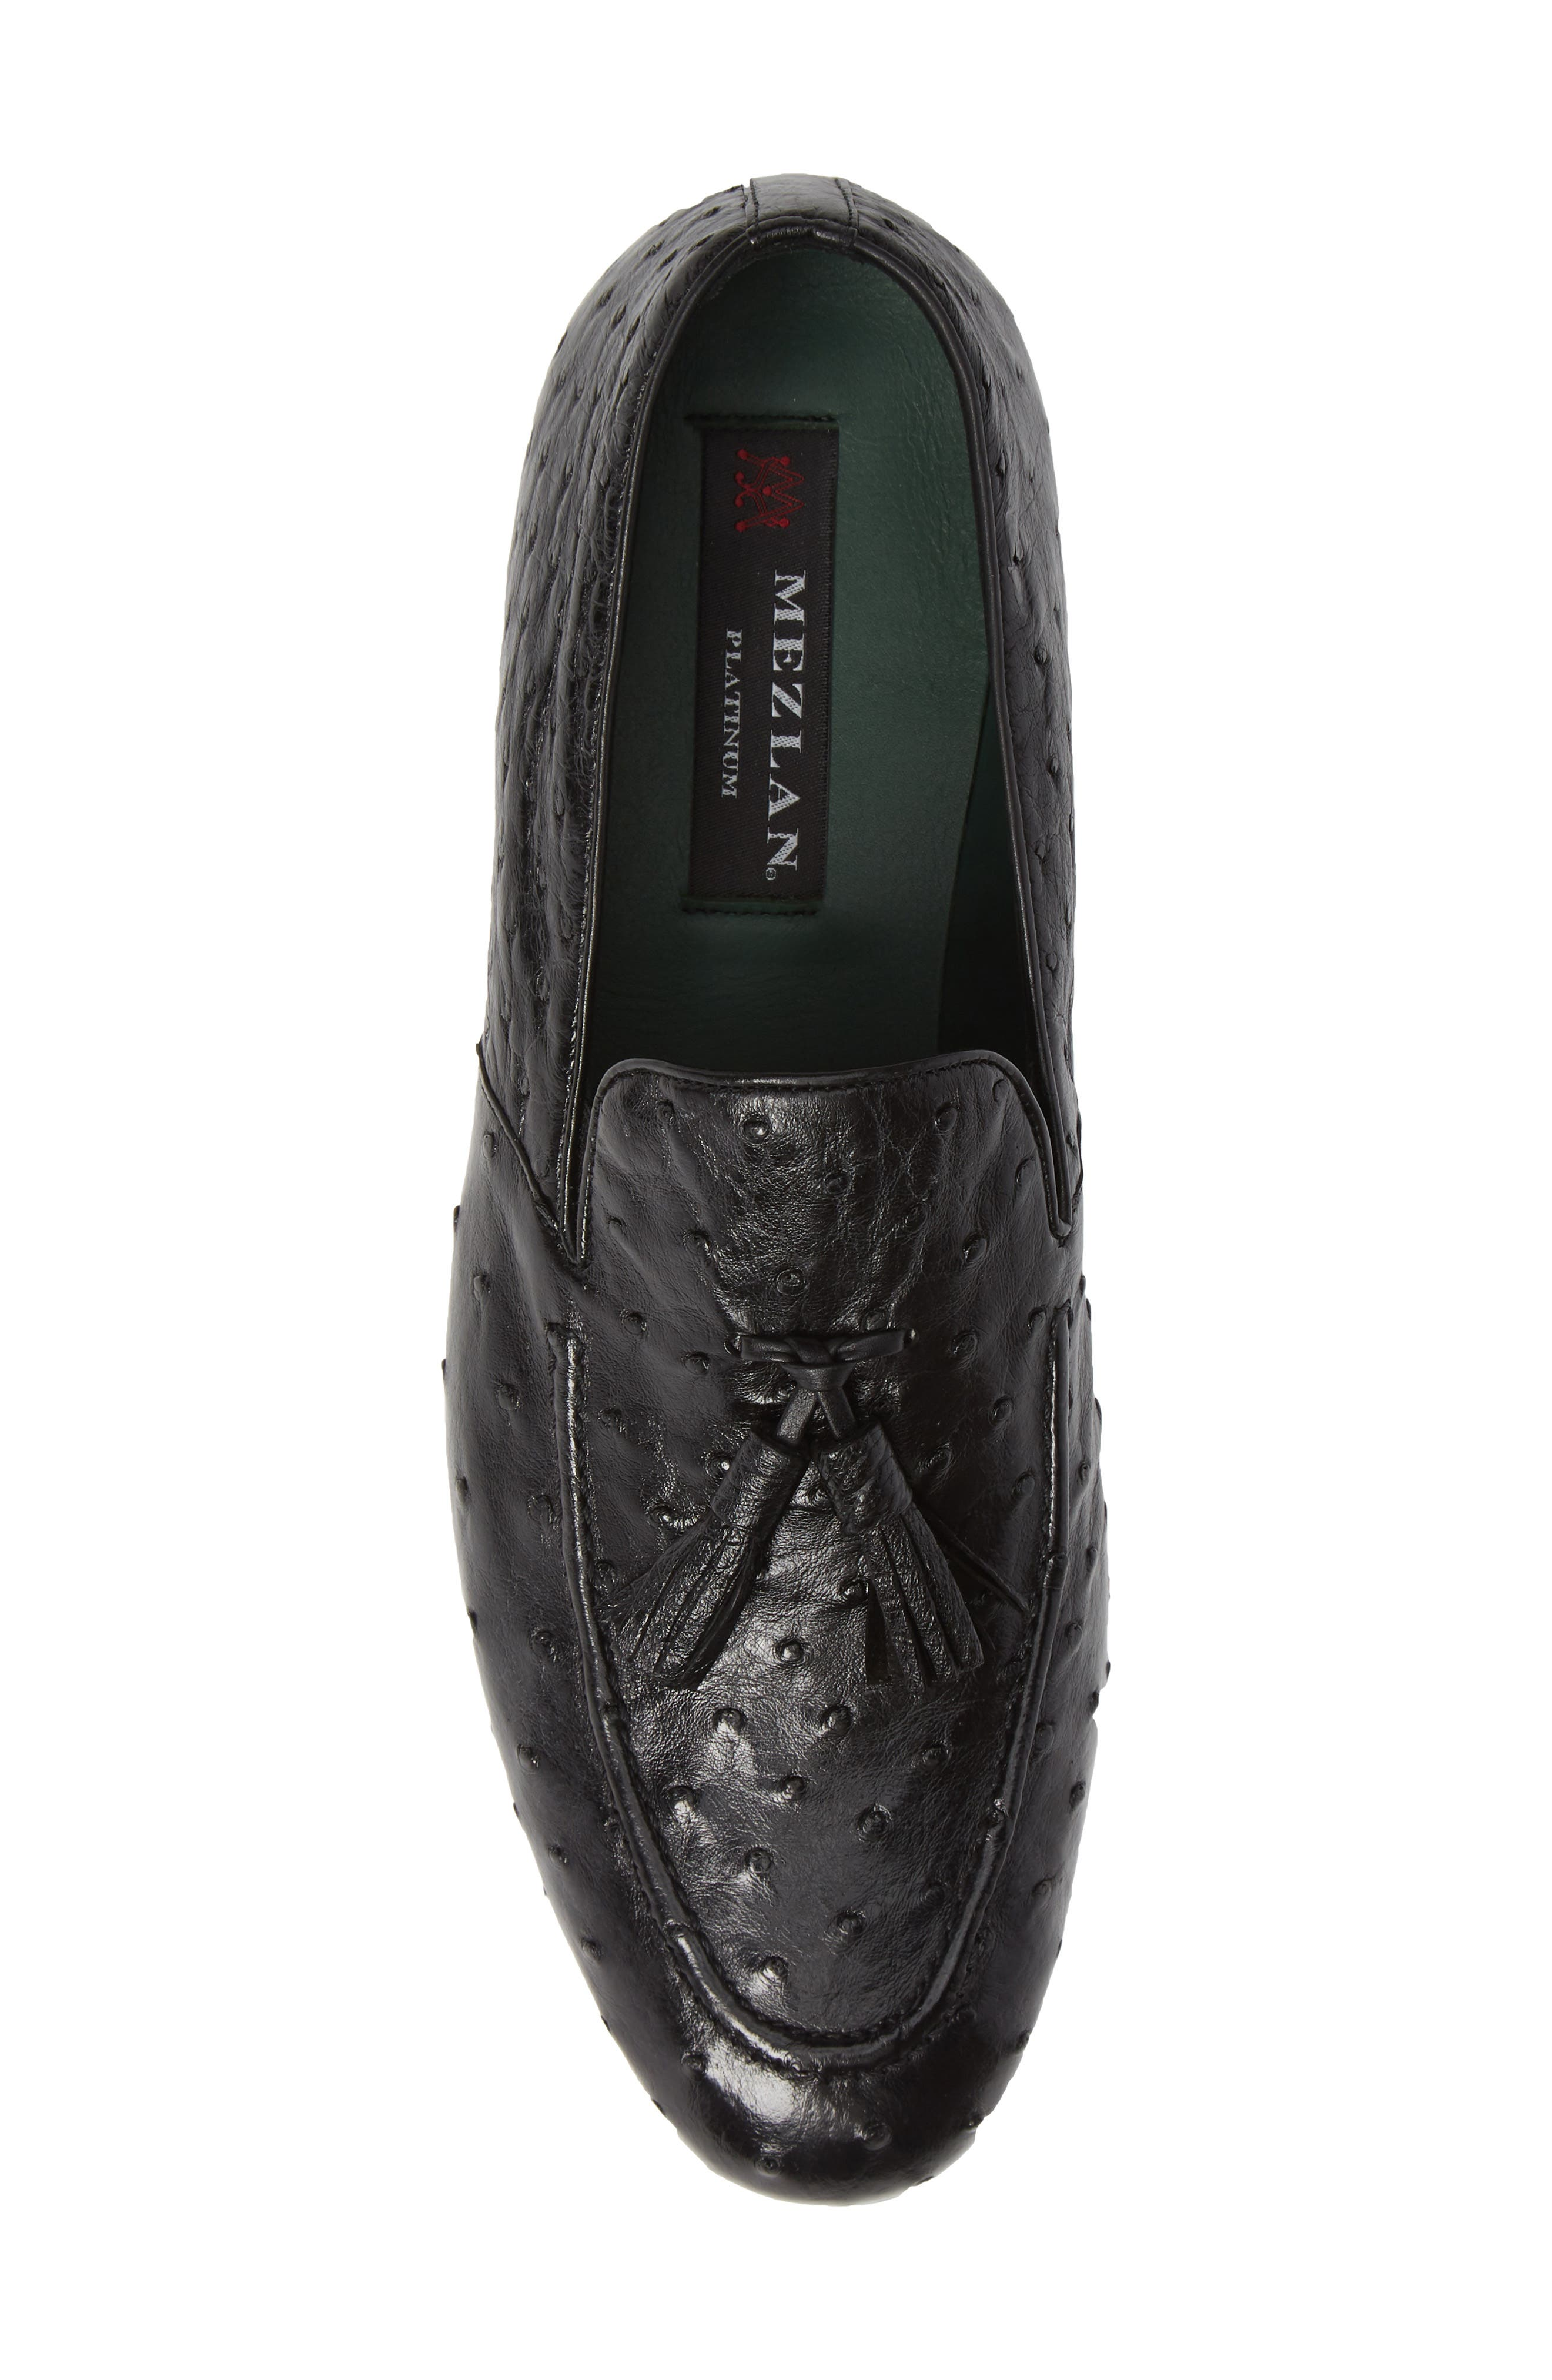 Conte Tassel Ostrich Leather Loafer,                             Alternate thumbnail 5, color,                             BLACK LEATHER